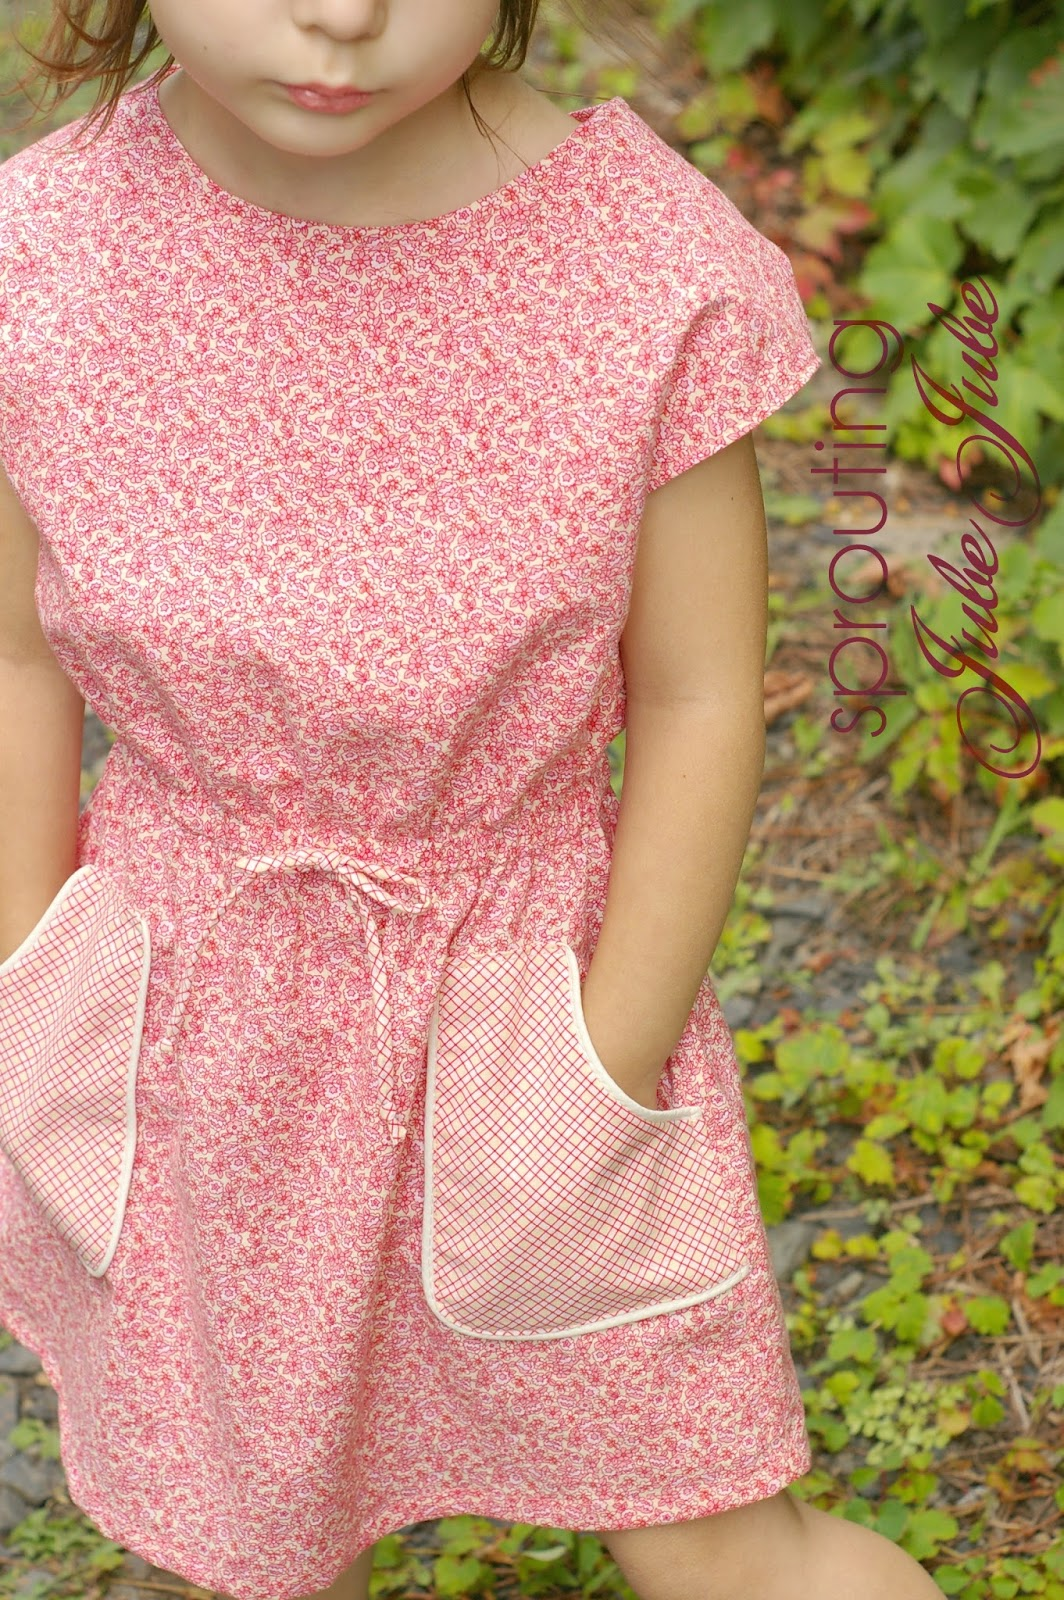 http://sproutingjj.blogspot.ca/2014/09/adding-pockets-to-dress-pattern-no13-by.html